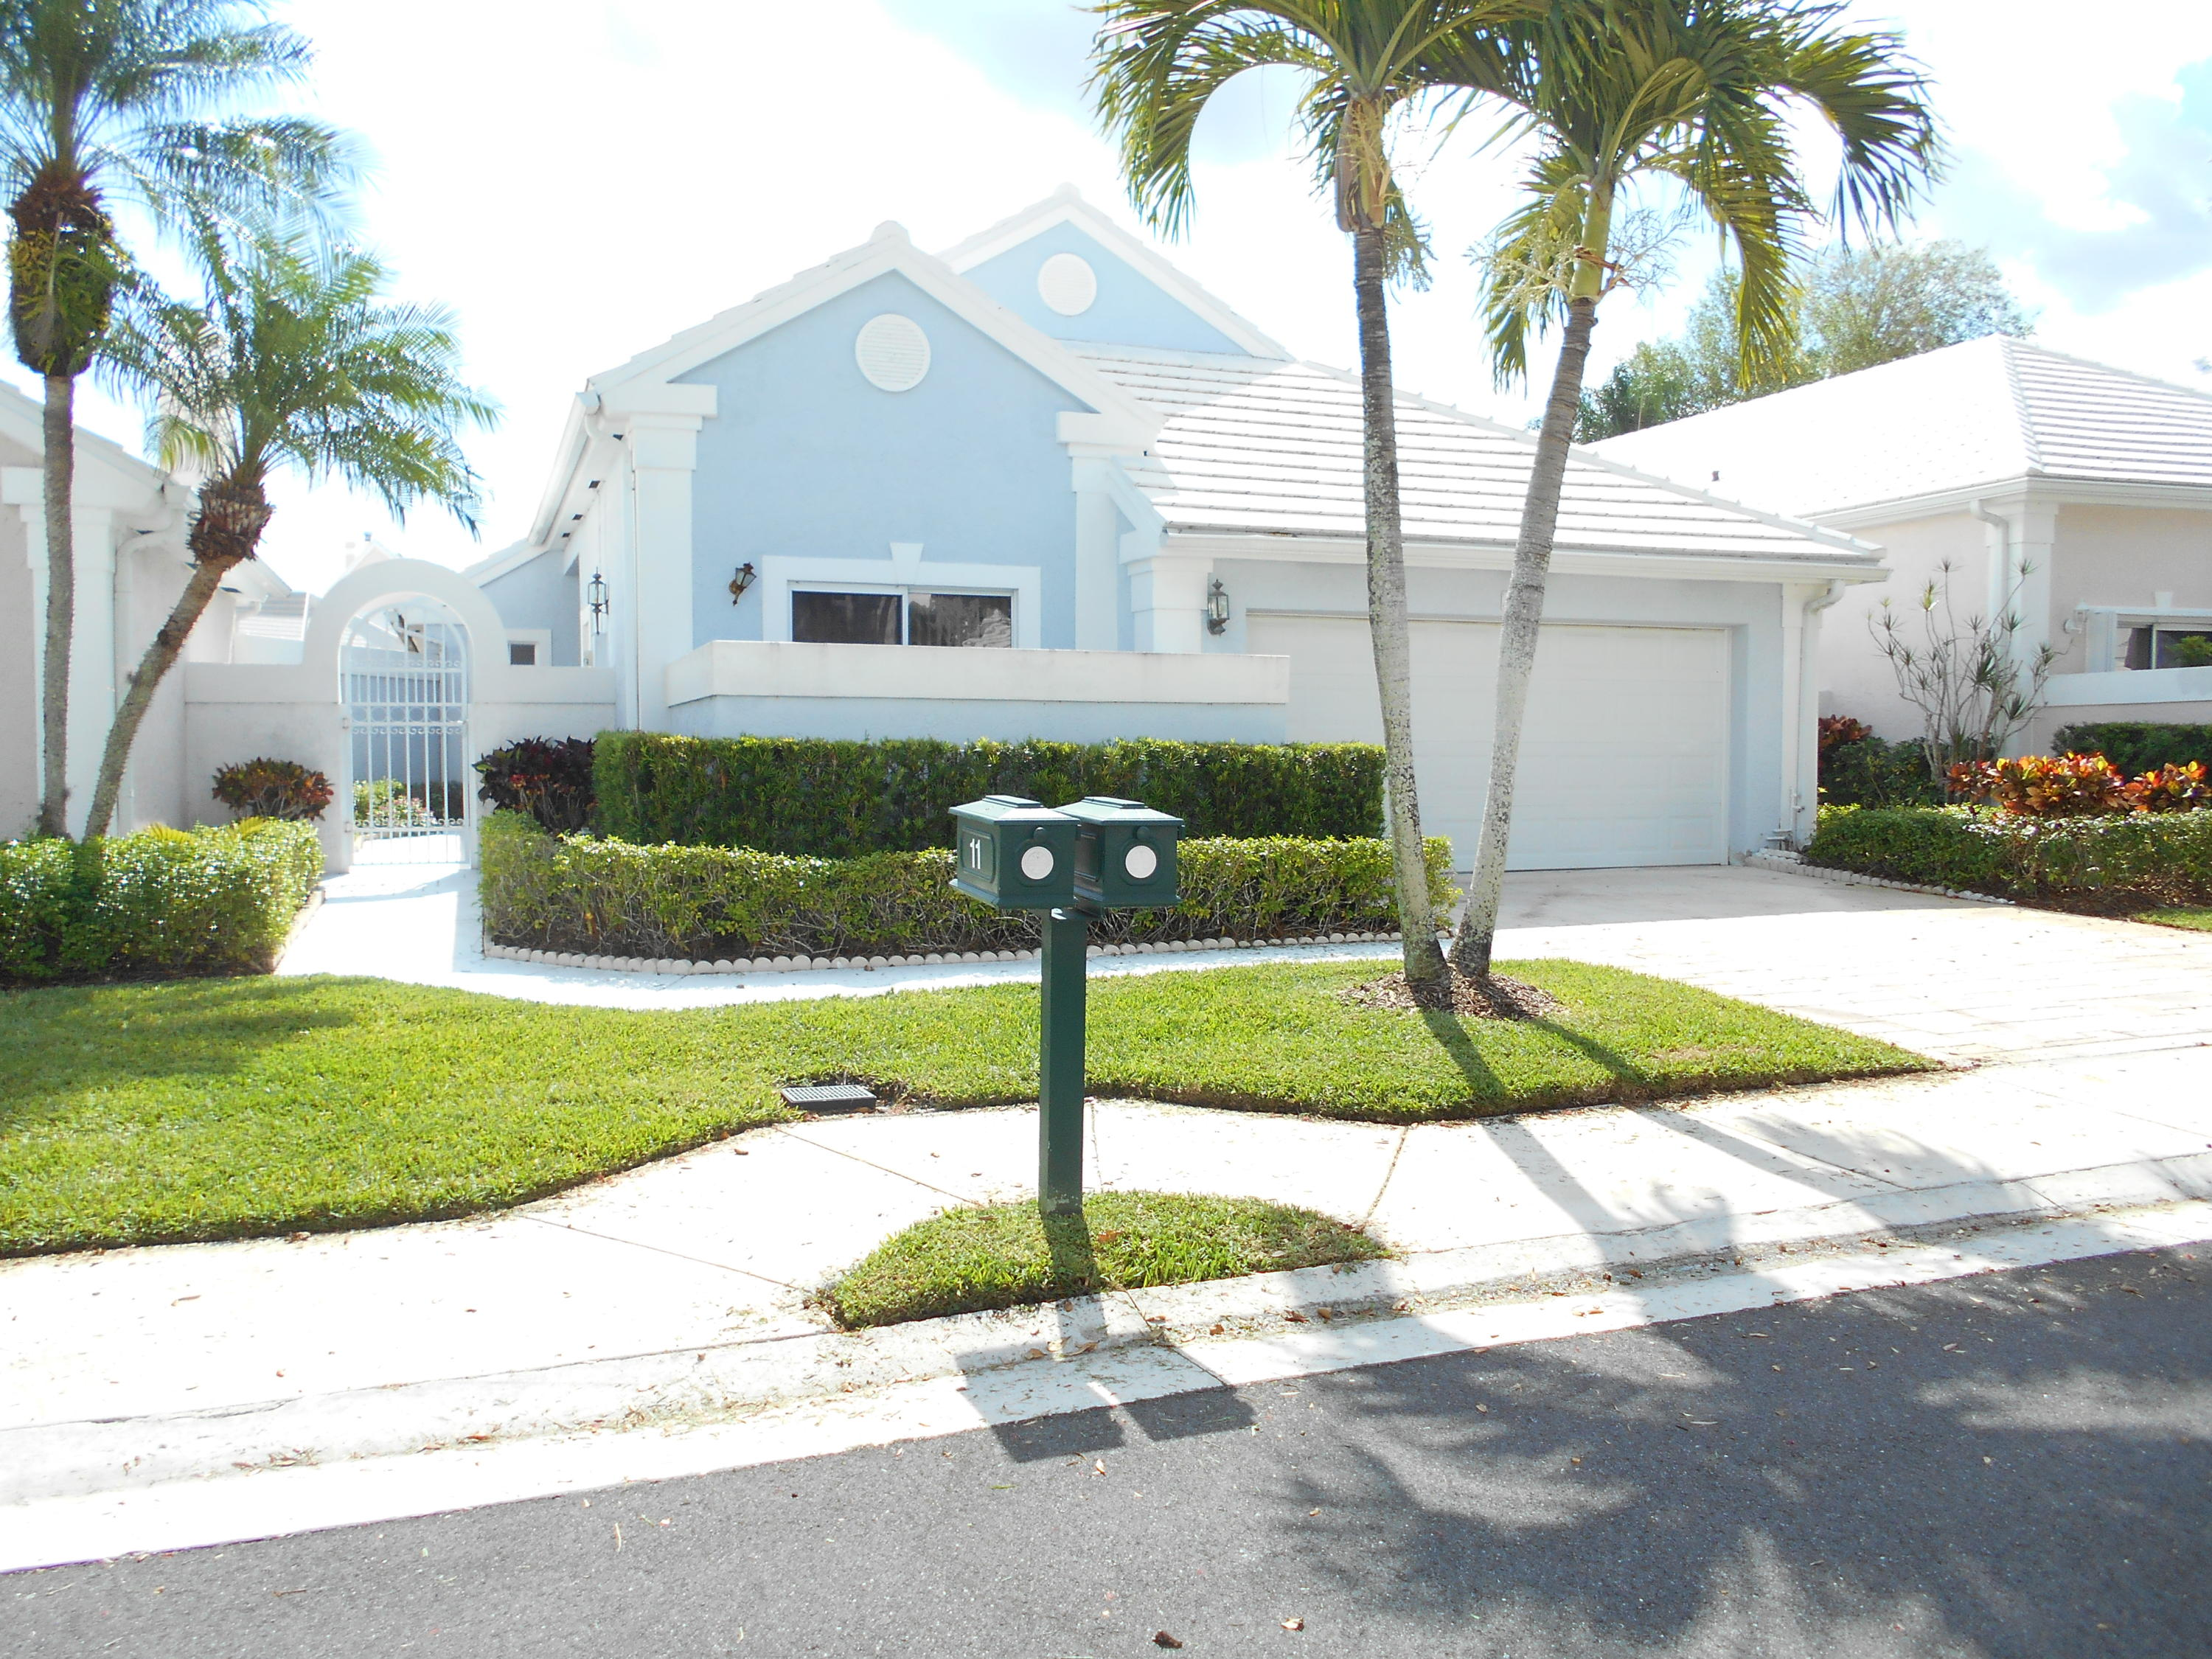 Home for sale in Pga National Palm Beach Gardens Florida